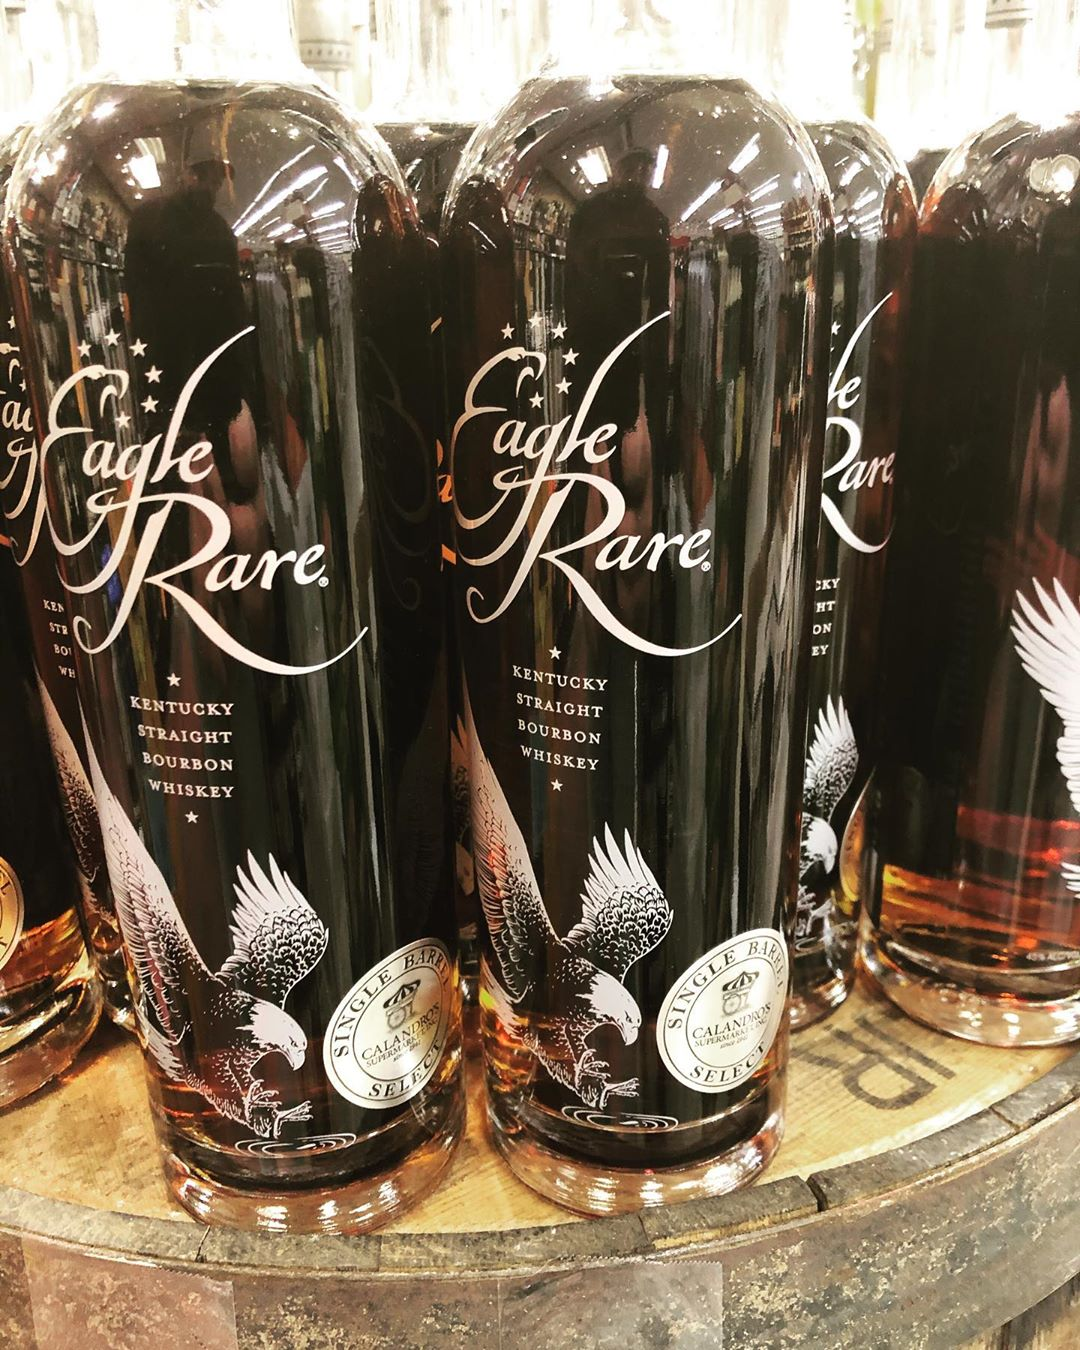 We hinted earlier this week at an @eaglerarebourbon barrel later this week and here it…